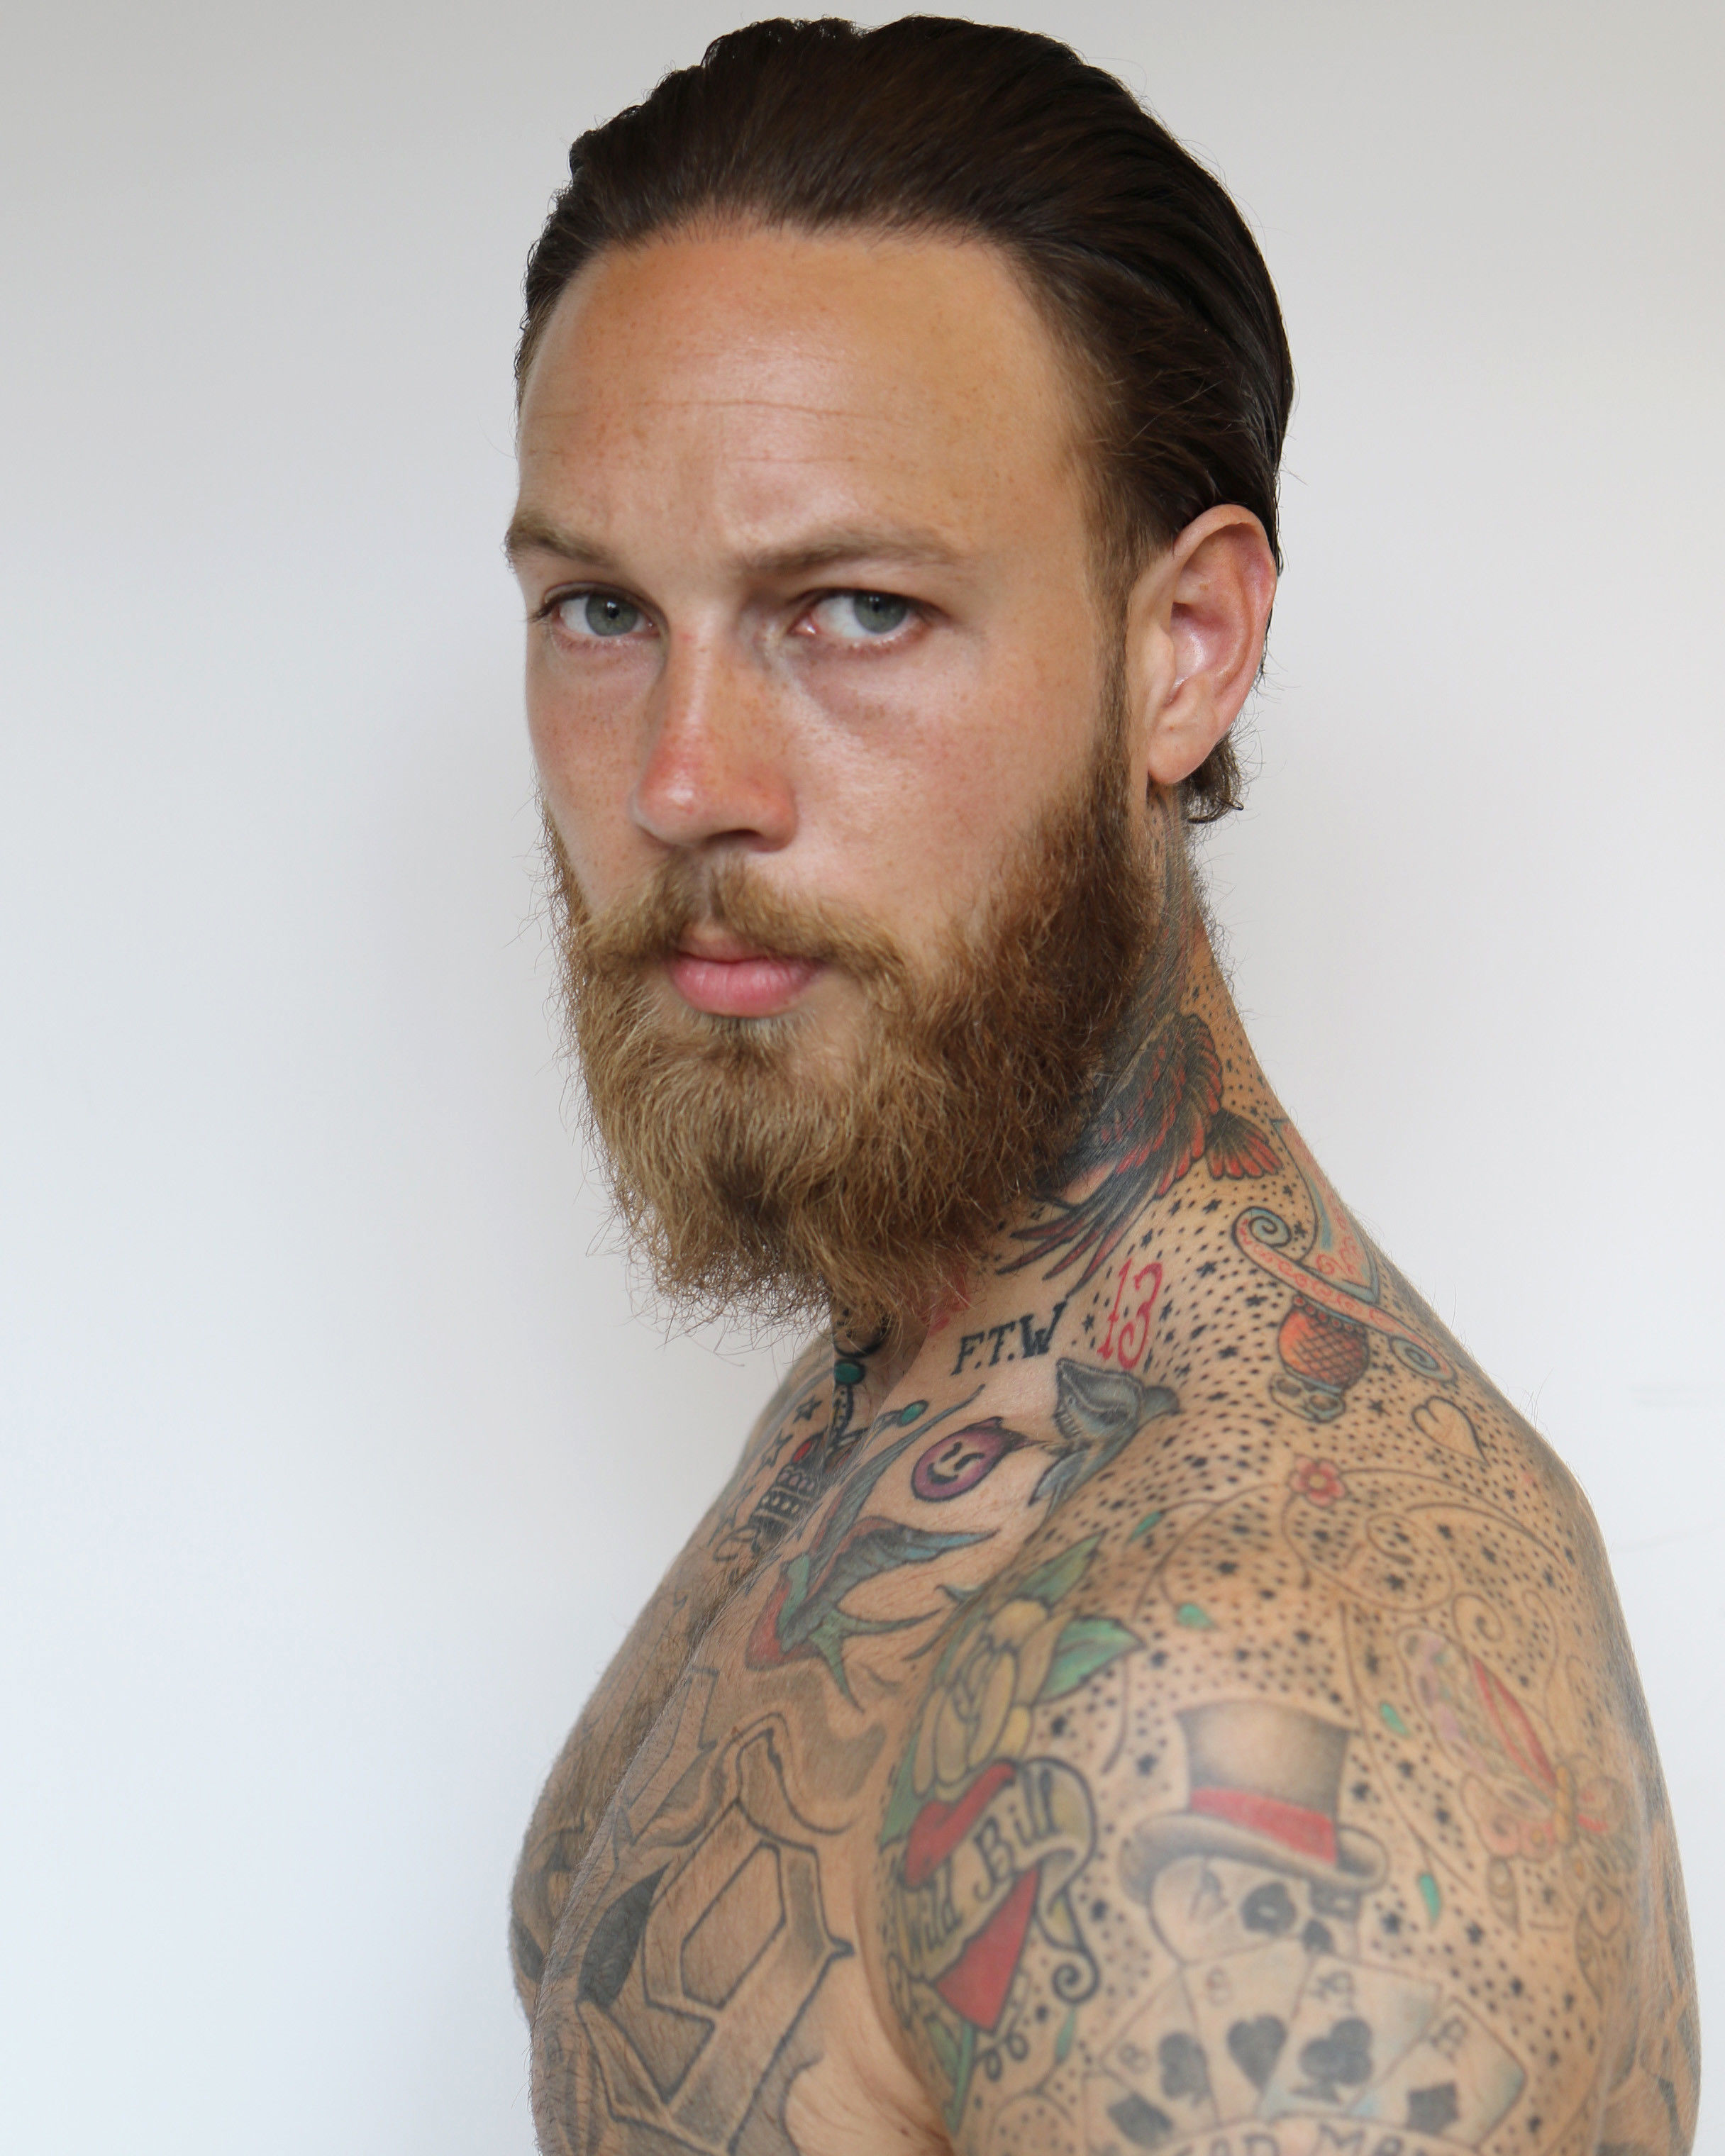 BILLY HUXLEY